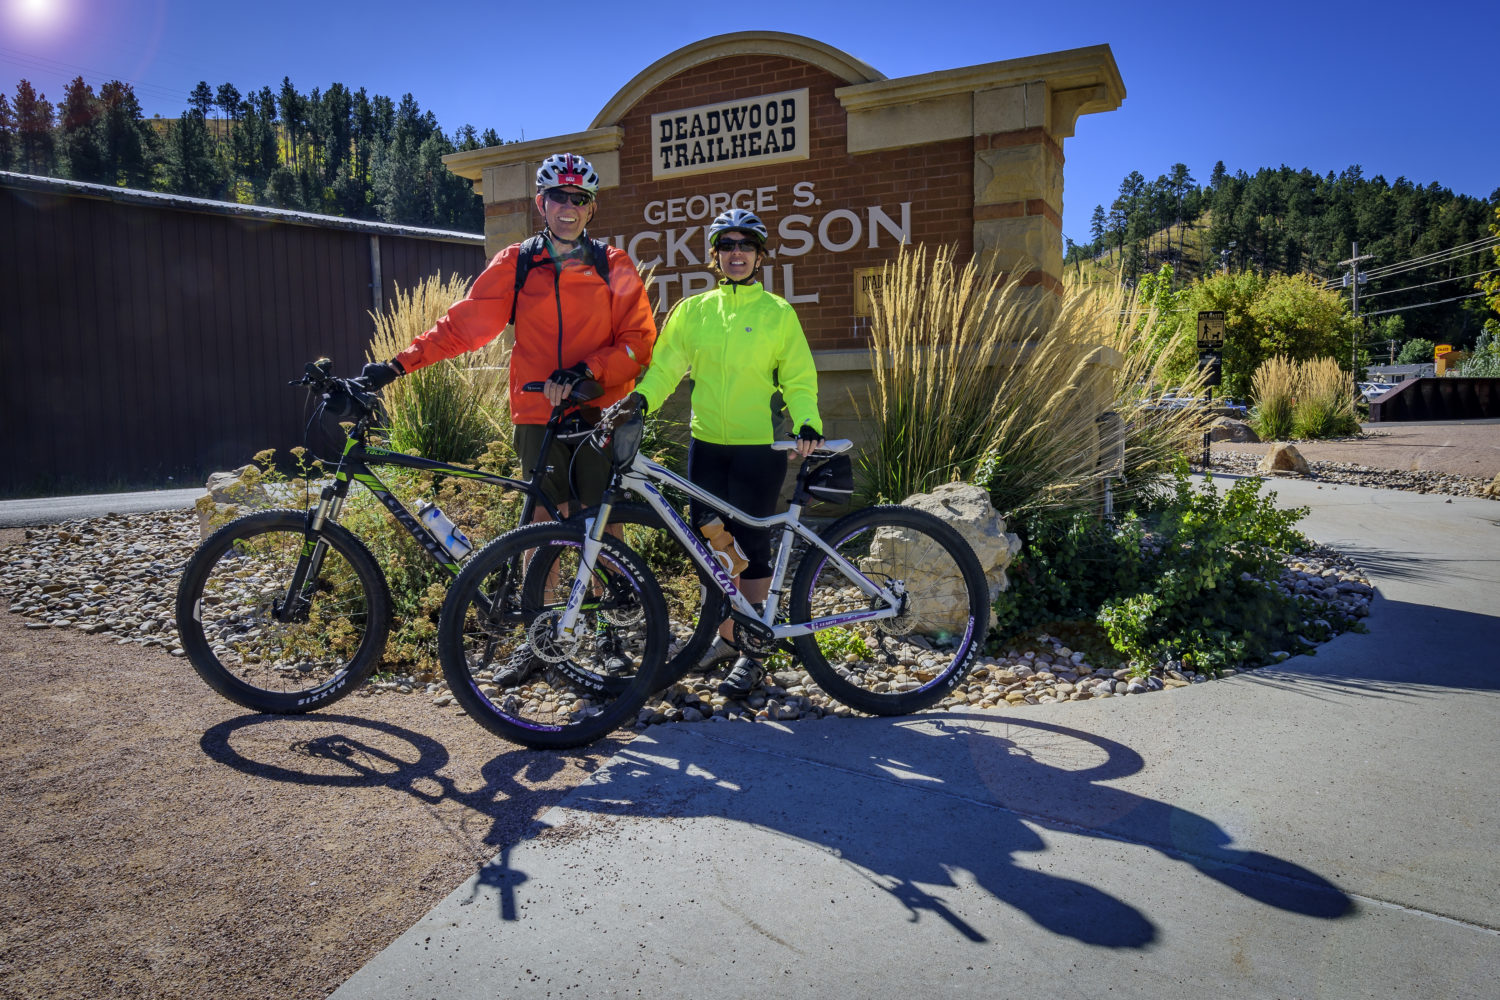 Cycle to the famous town of Deadwood